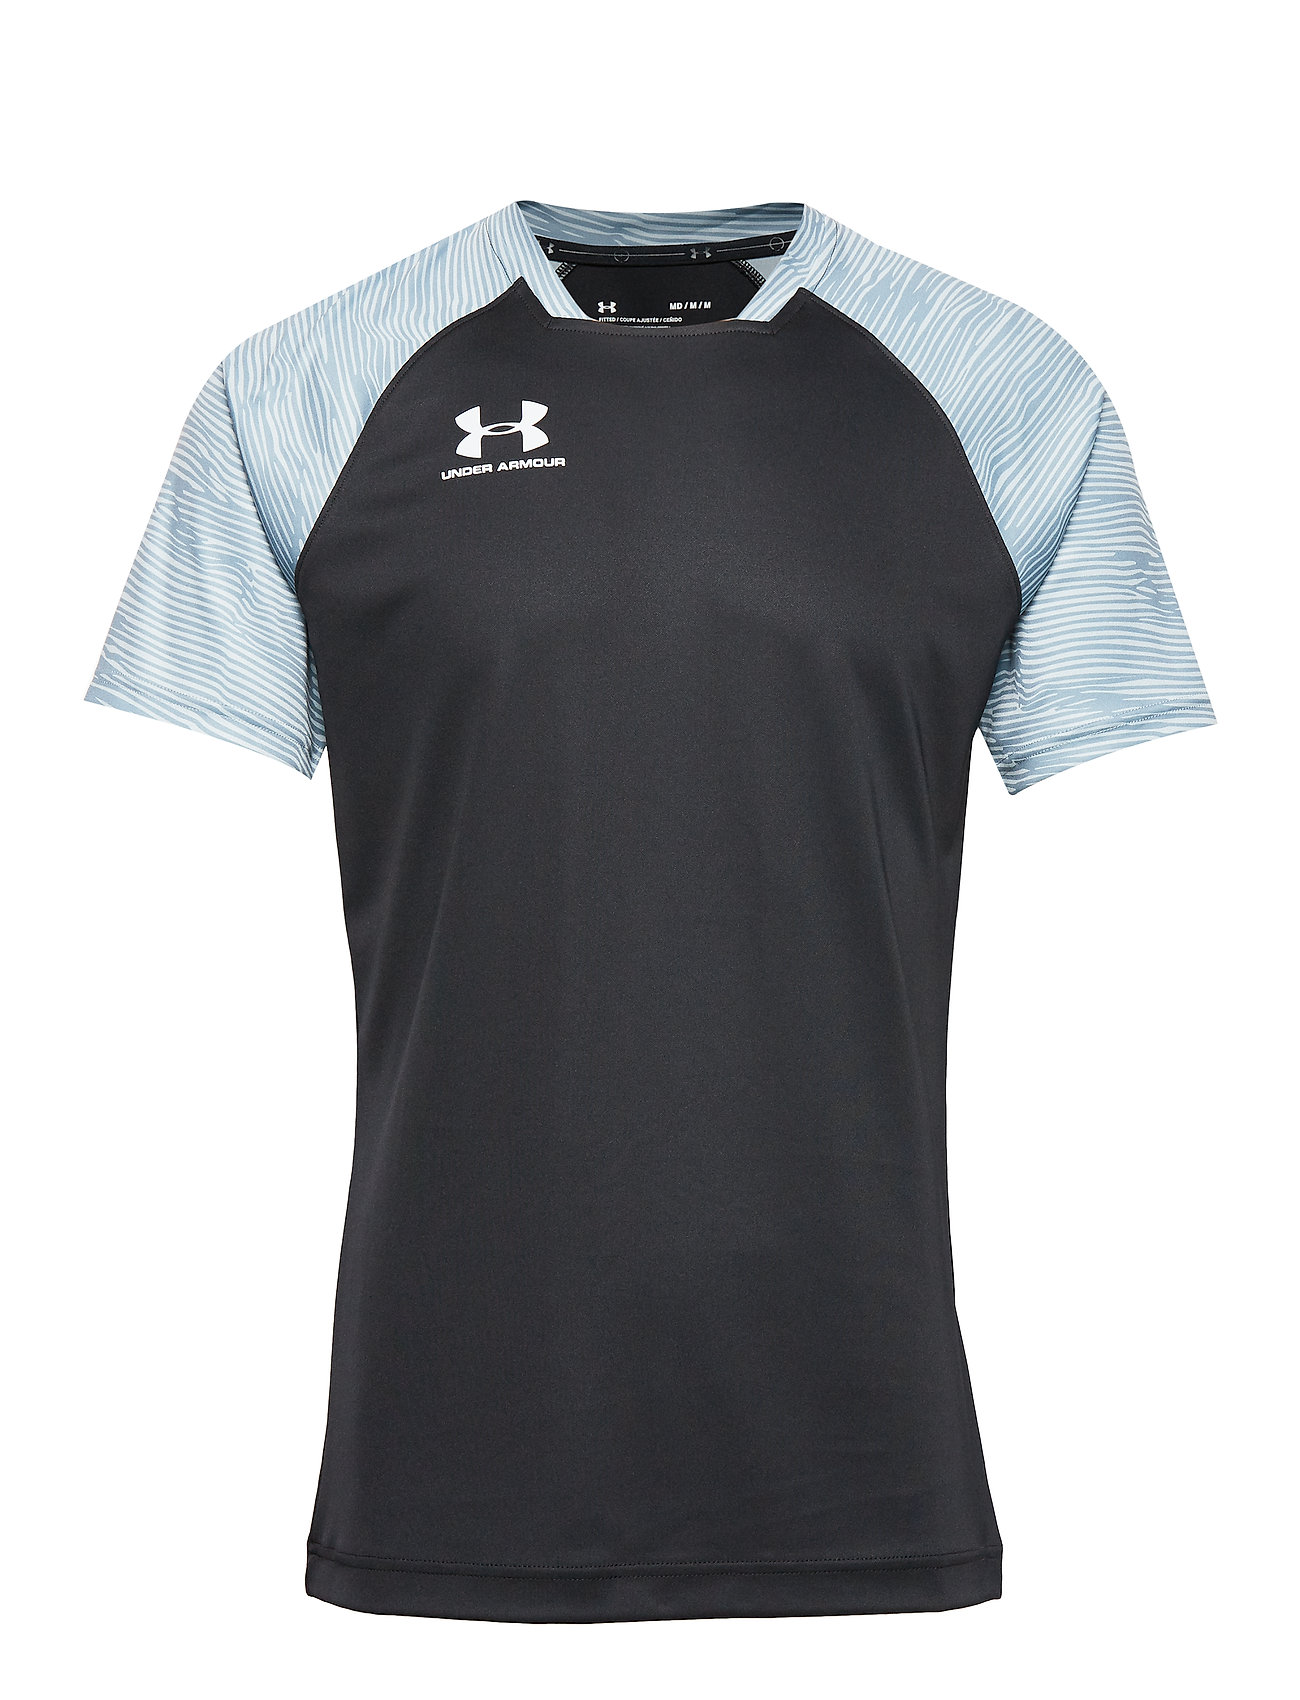 Under Armour ACCELERATE PREMIER SS TOP - BLACK